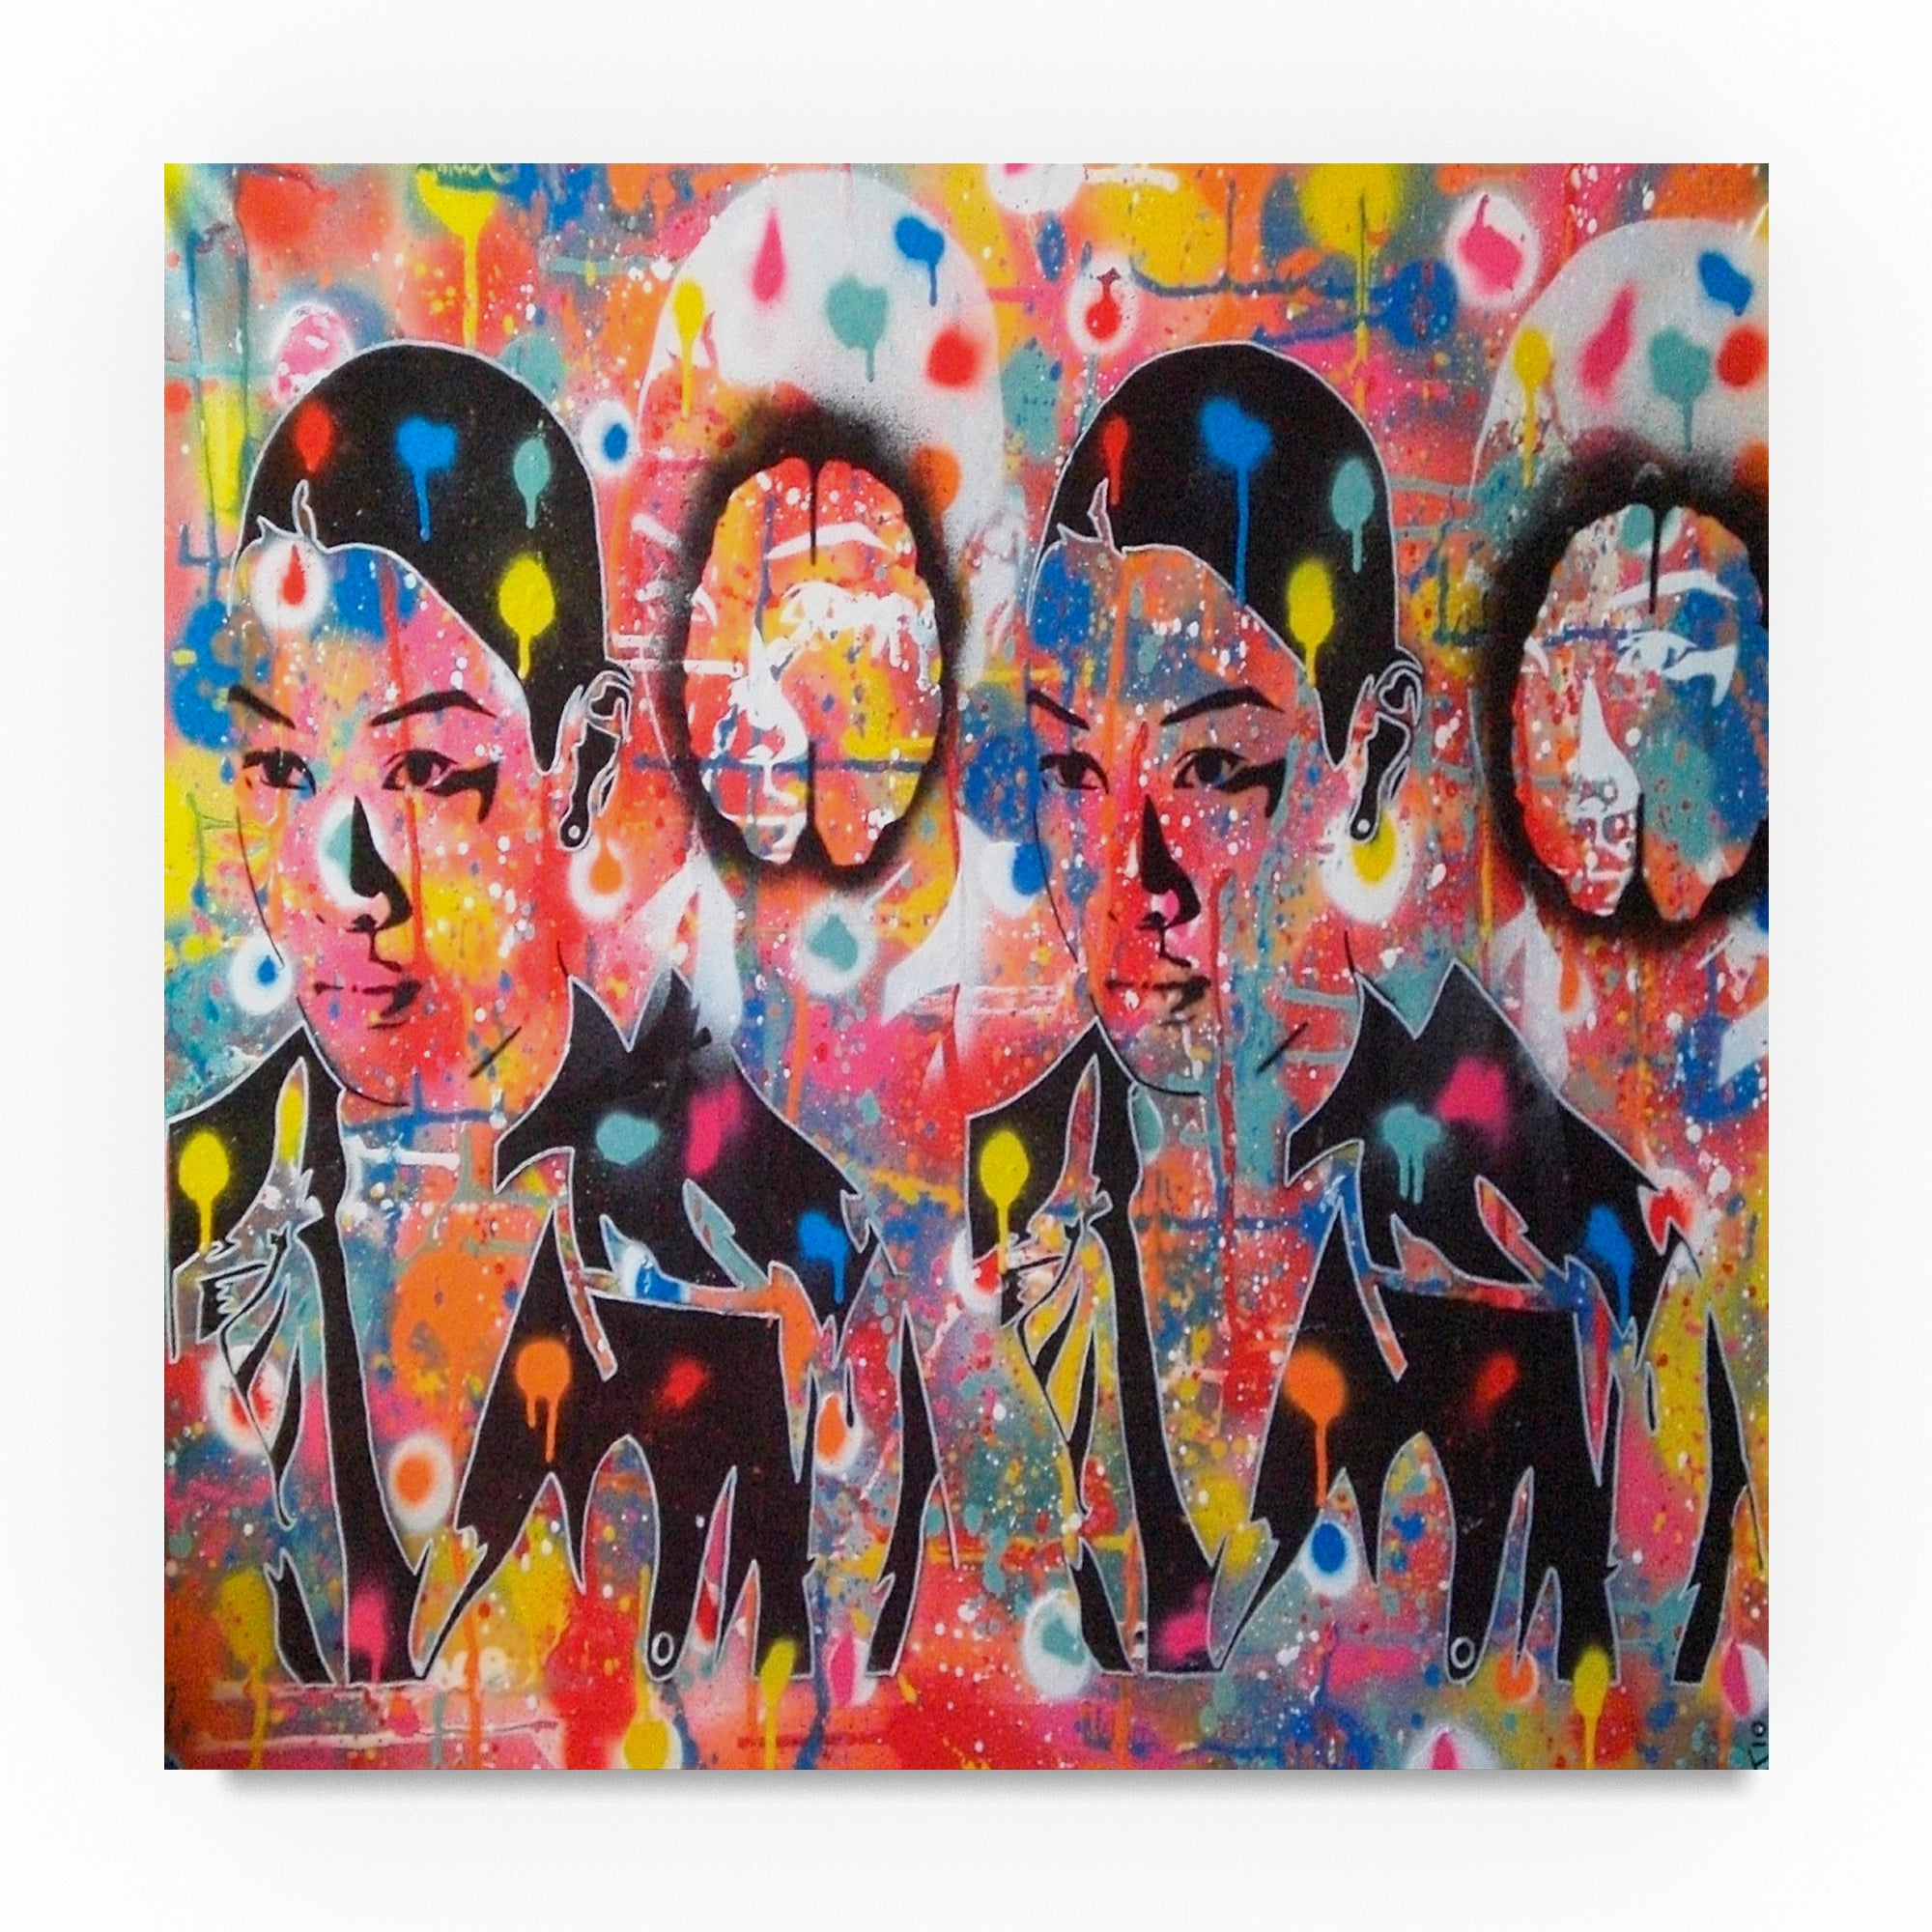 Shop abstract graffiti abstract androids canvas art free shipping on orders over 45 overstock 19207744